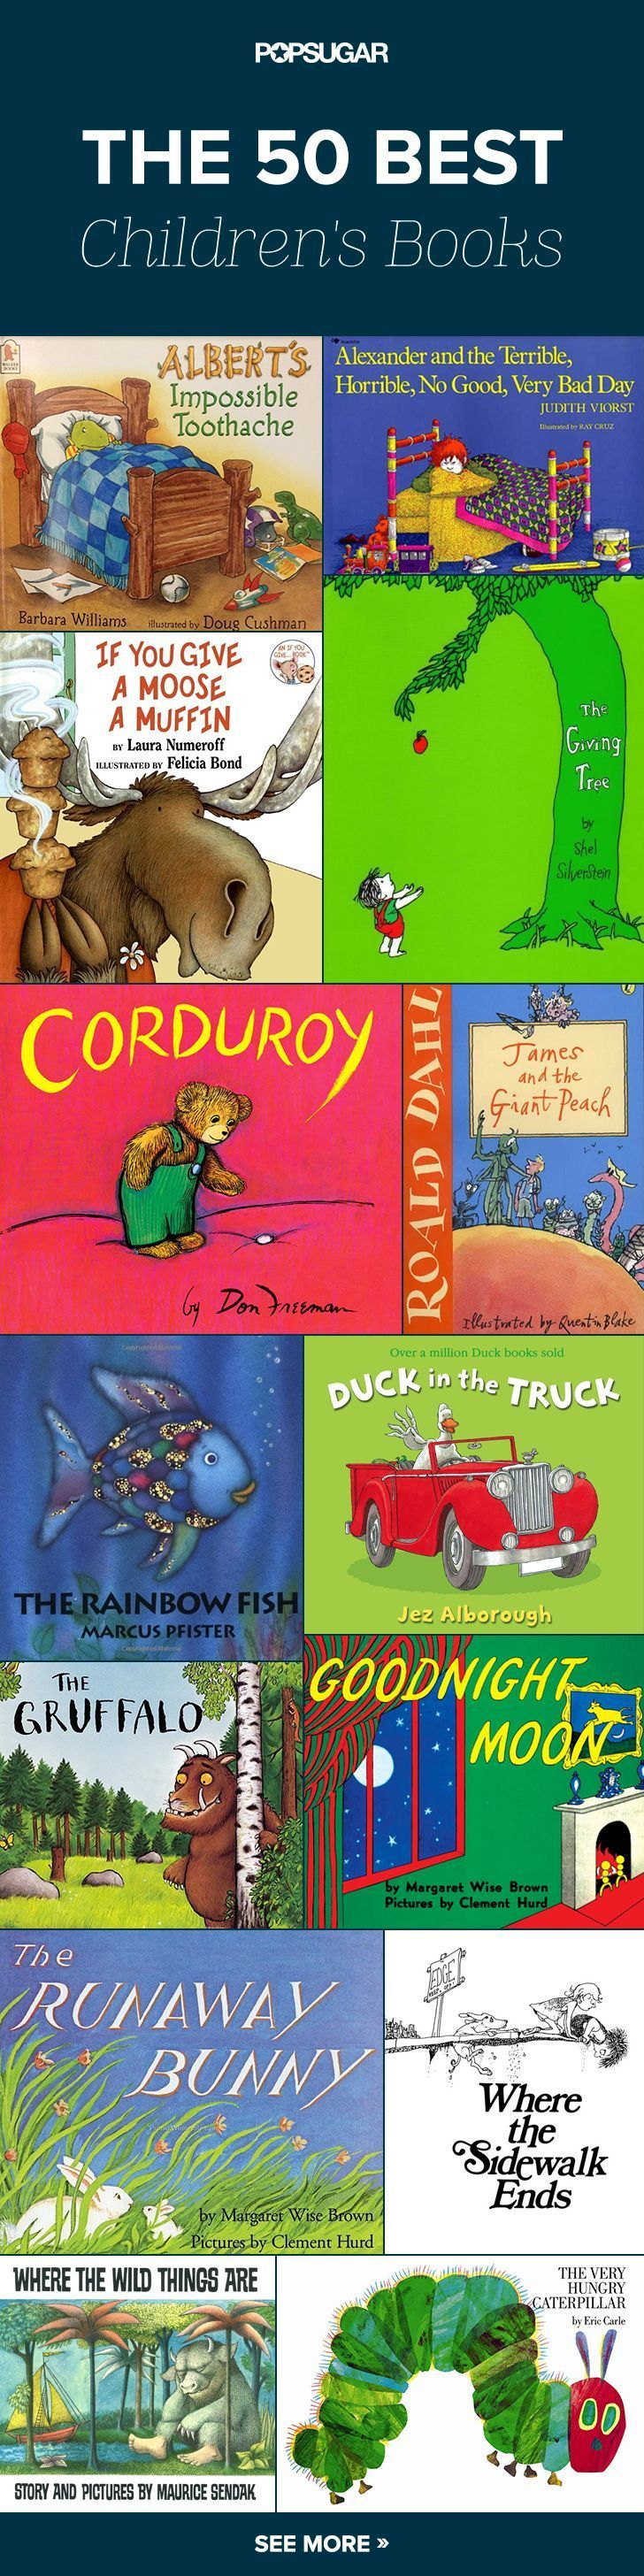 Top 50 best Children's books. // Top 50 libros infantiles #books #kids